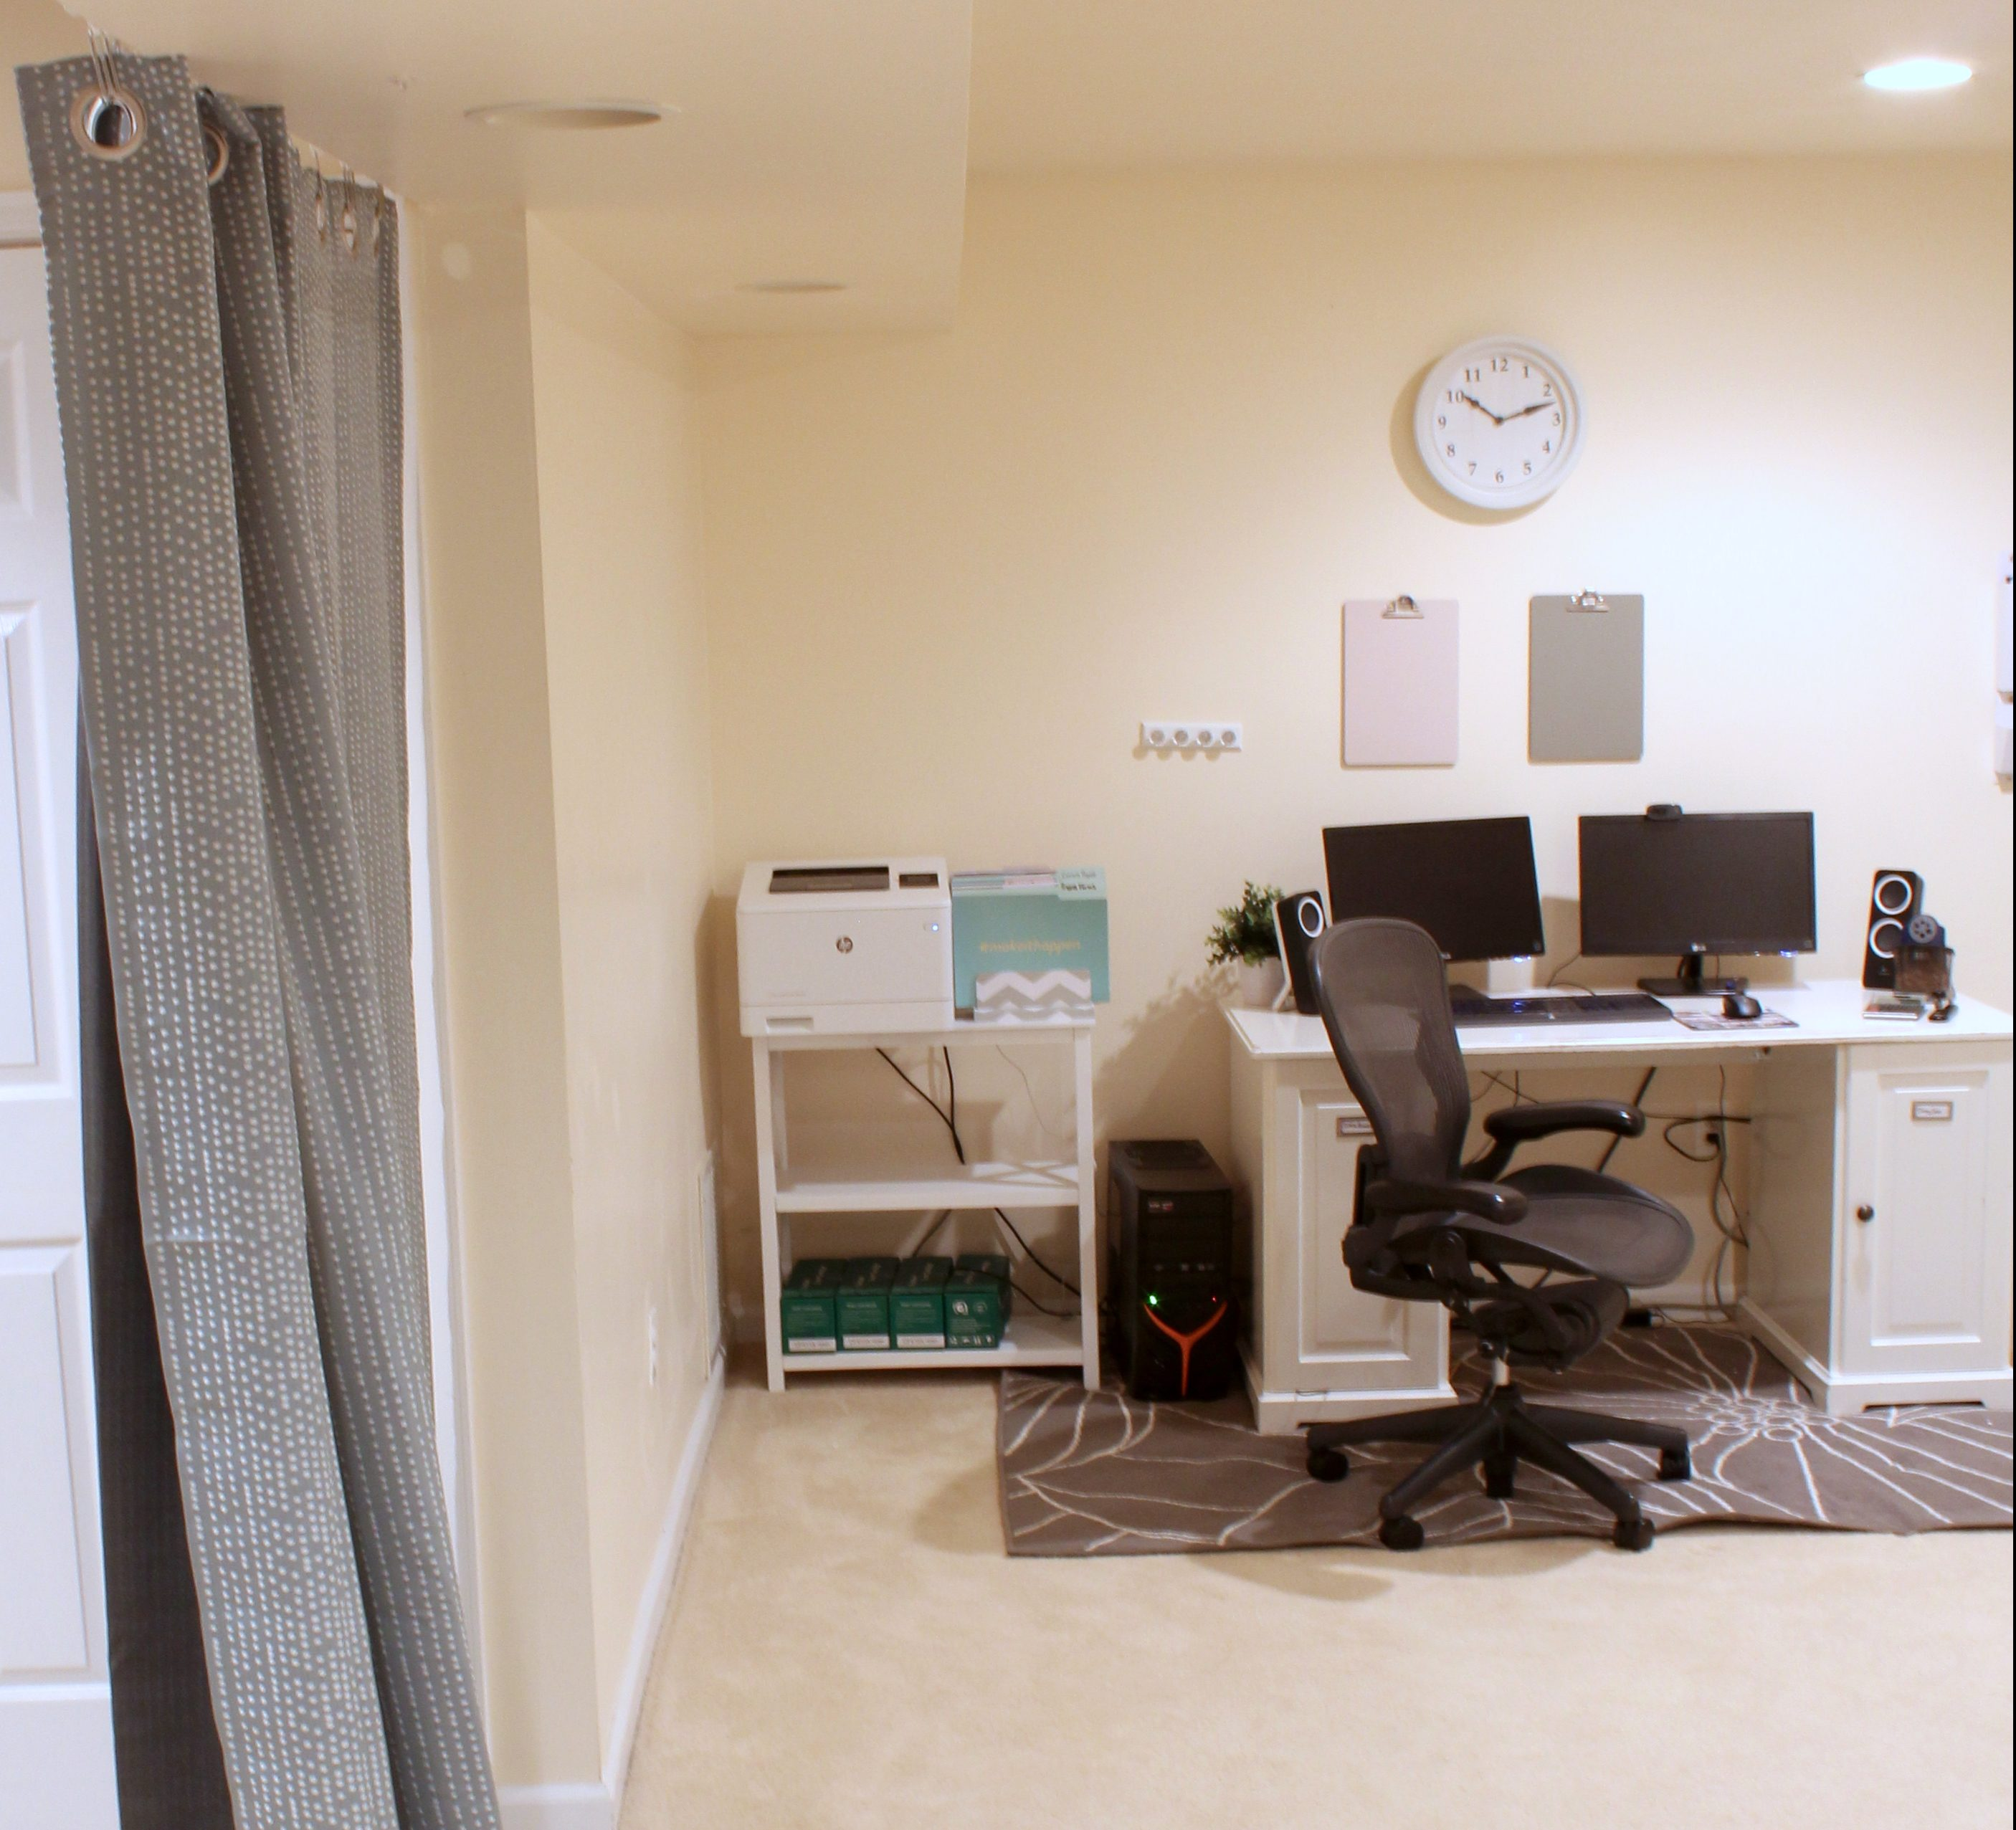 These home office ideas on a budget are exactly what I needed to get my home